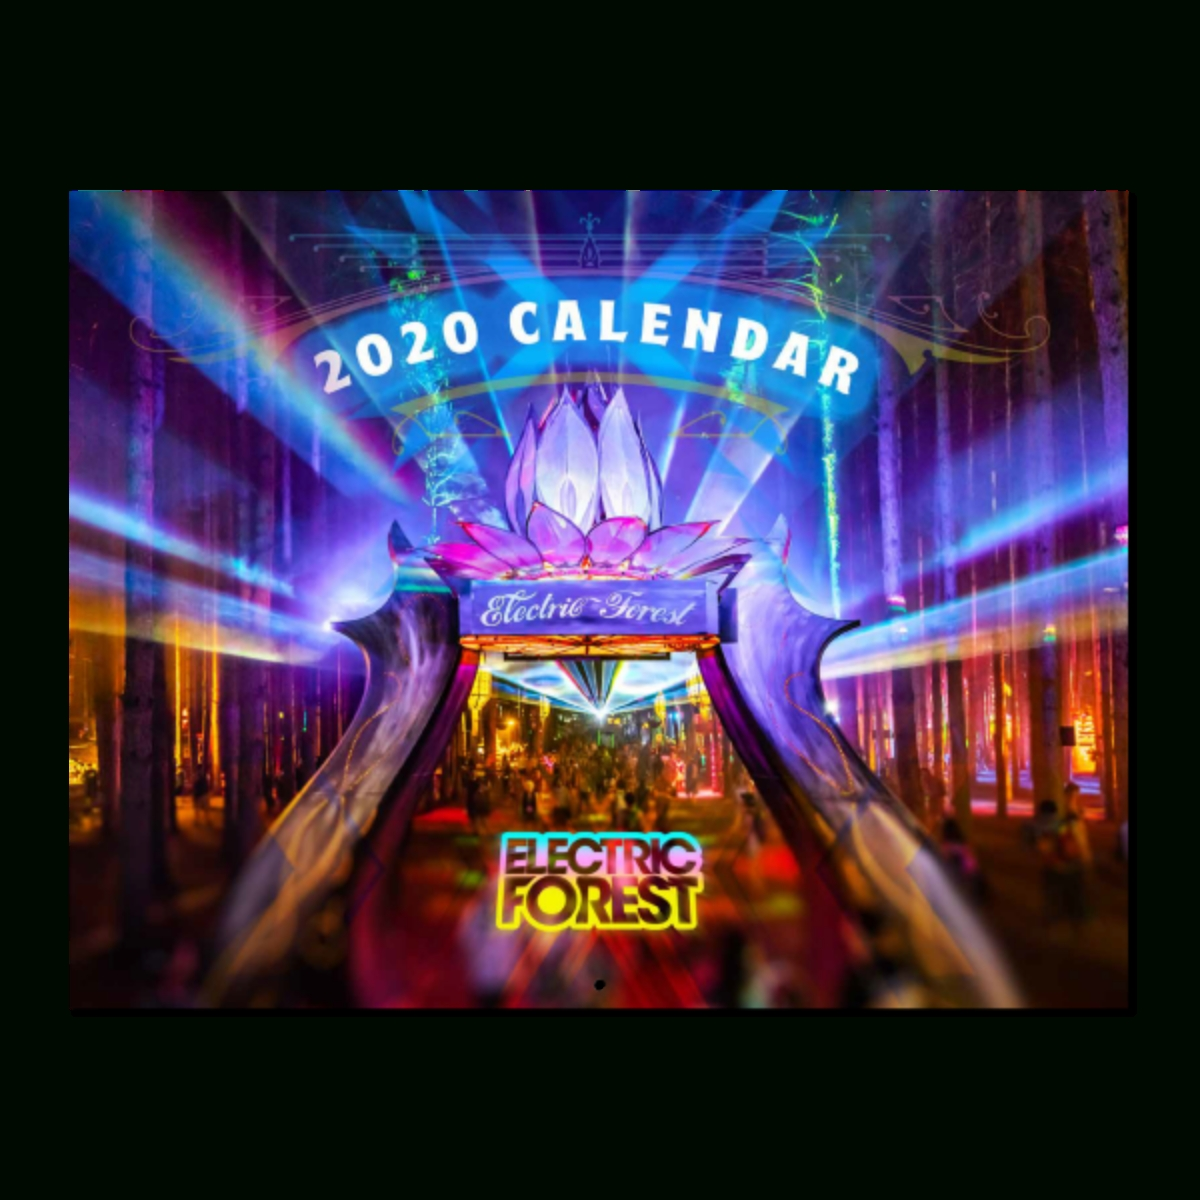 Holiday Capsule 2020 Calendar | Shop The Electric Forest